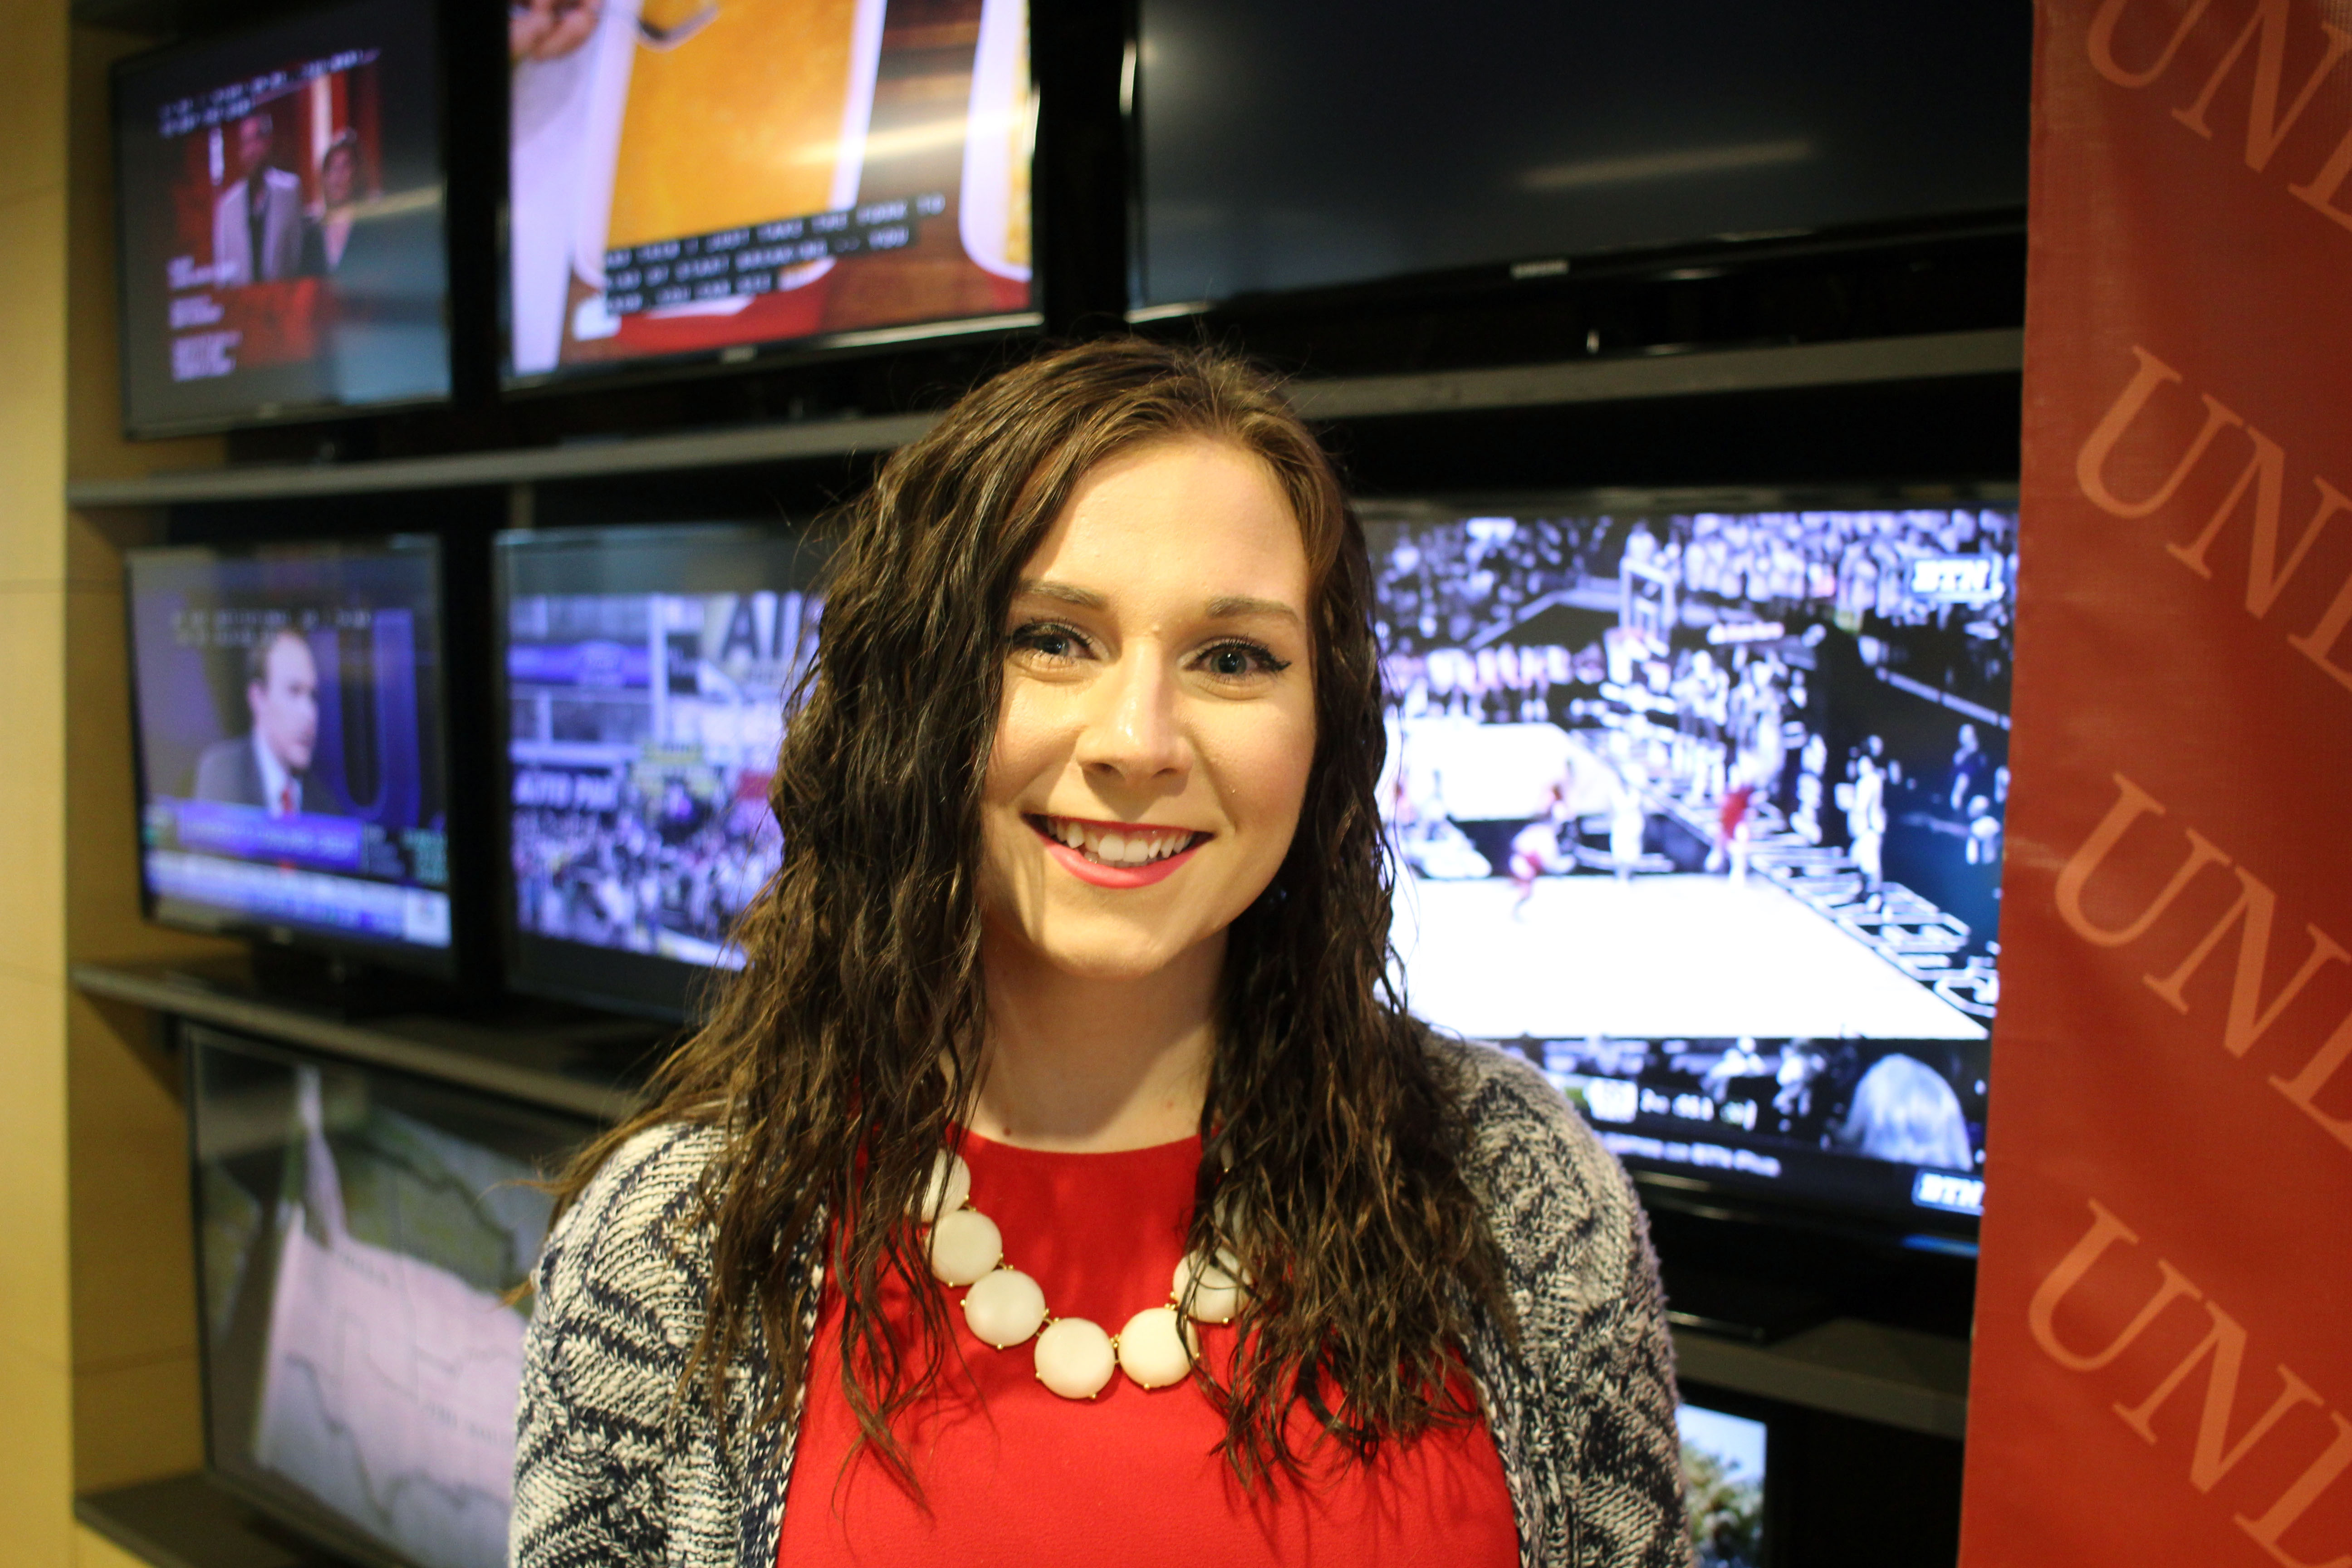 CoJMC student Bailey Hurley: links to news story